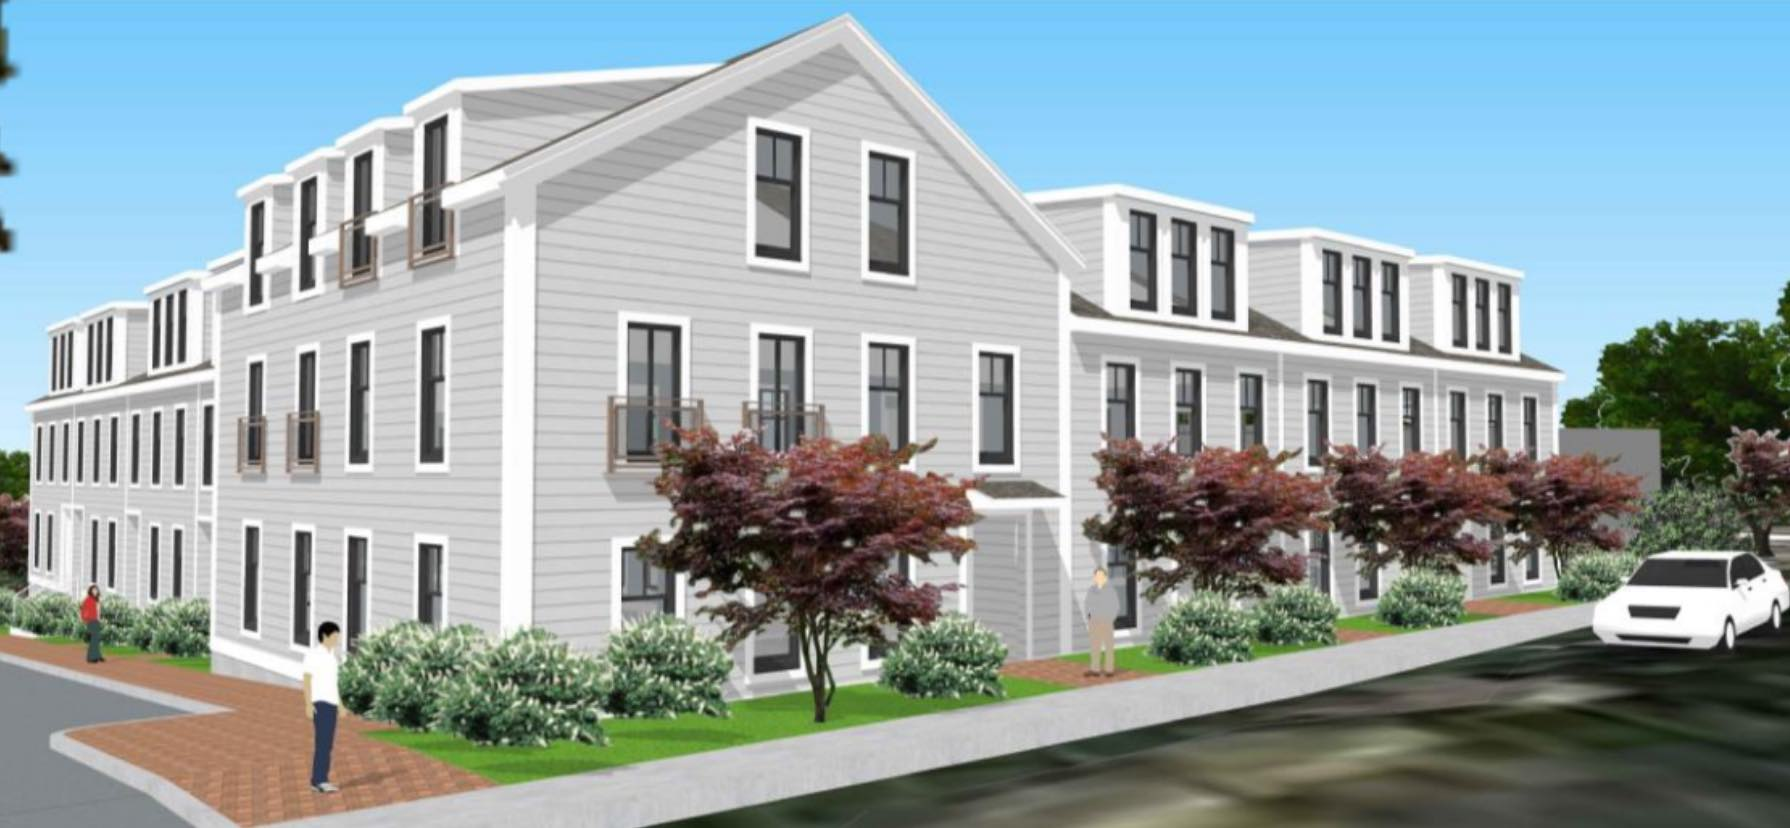 270 baker street residential development west roxbury boston